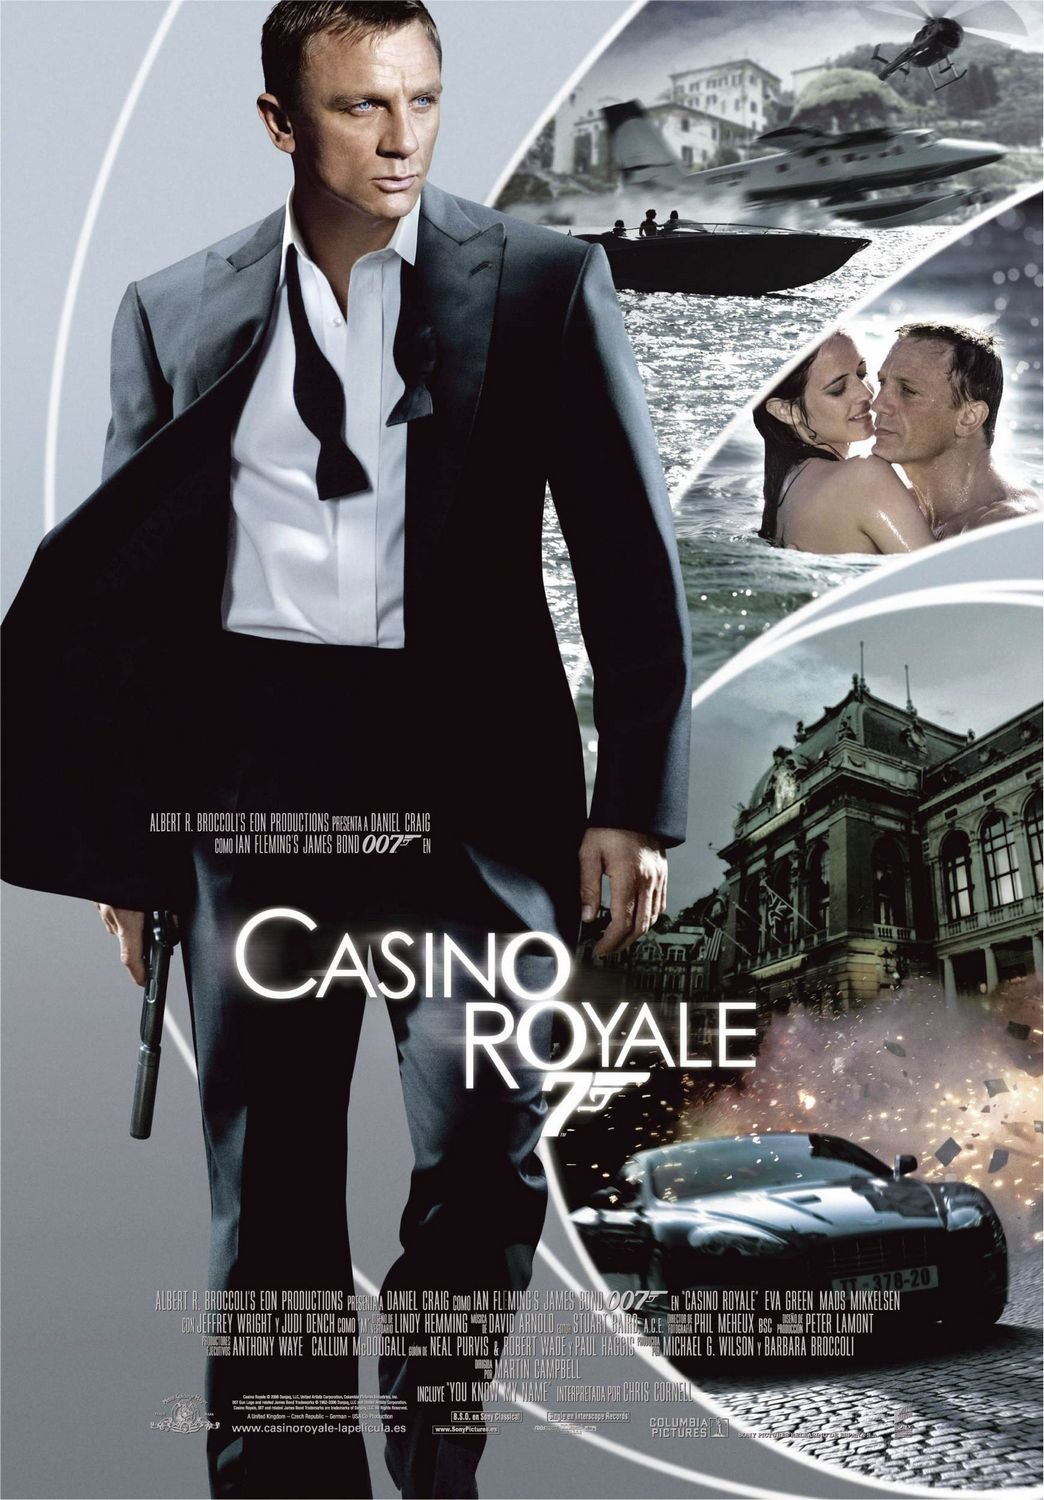 casino royale 2006 full movie online free find casino games